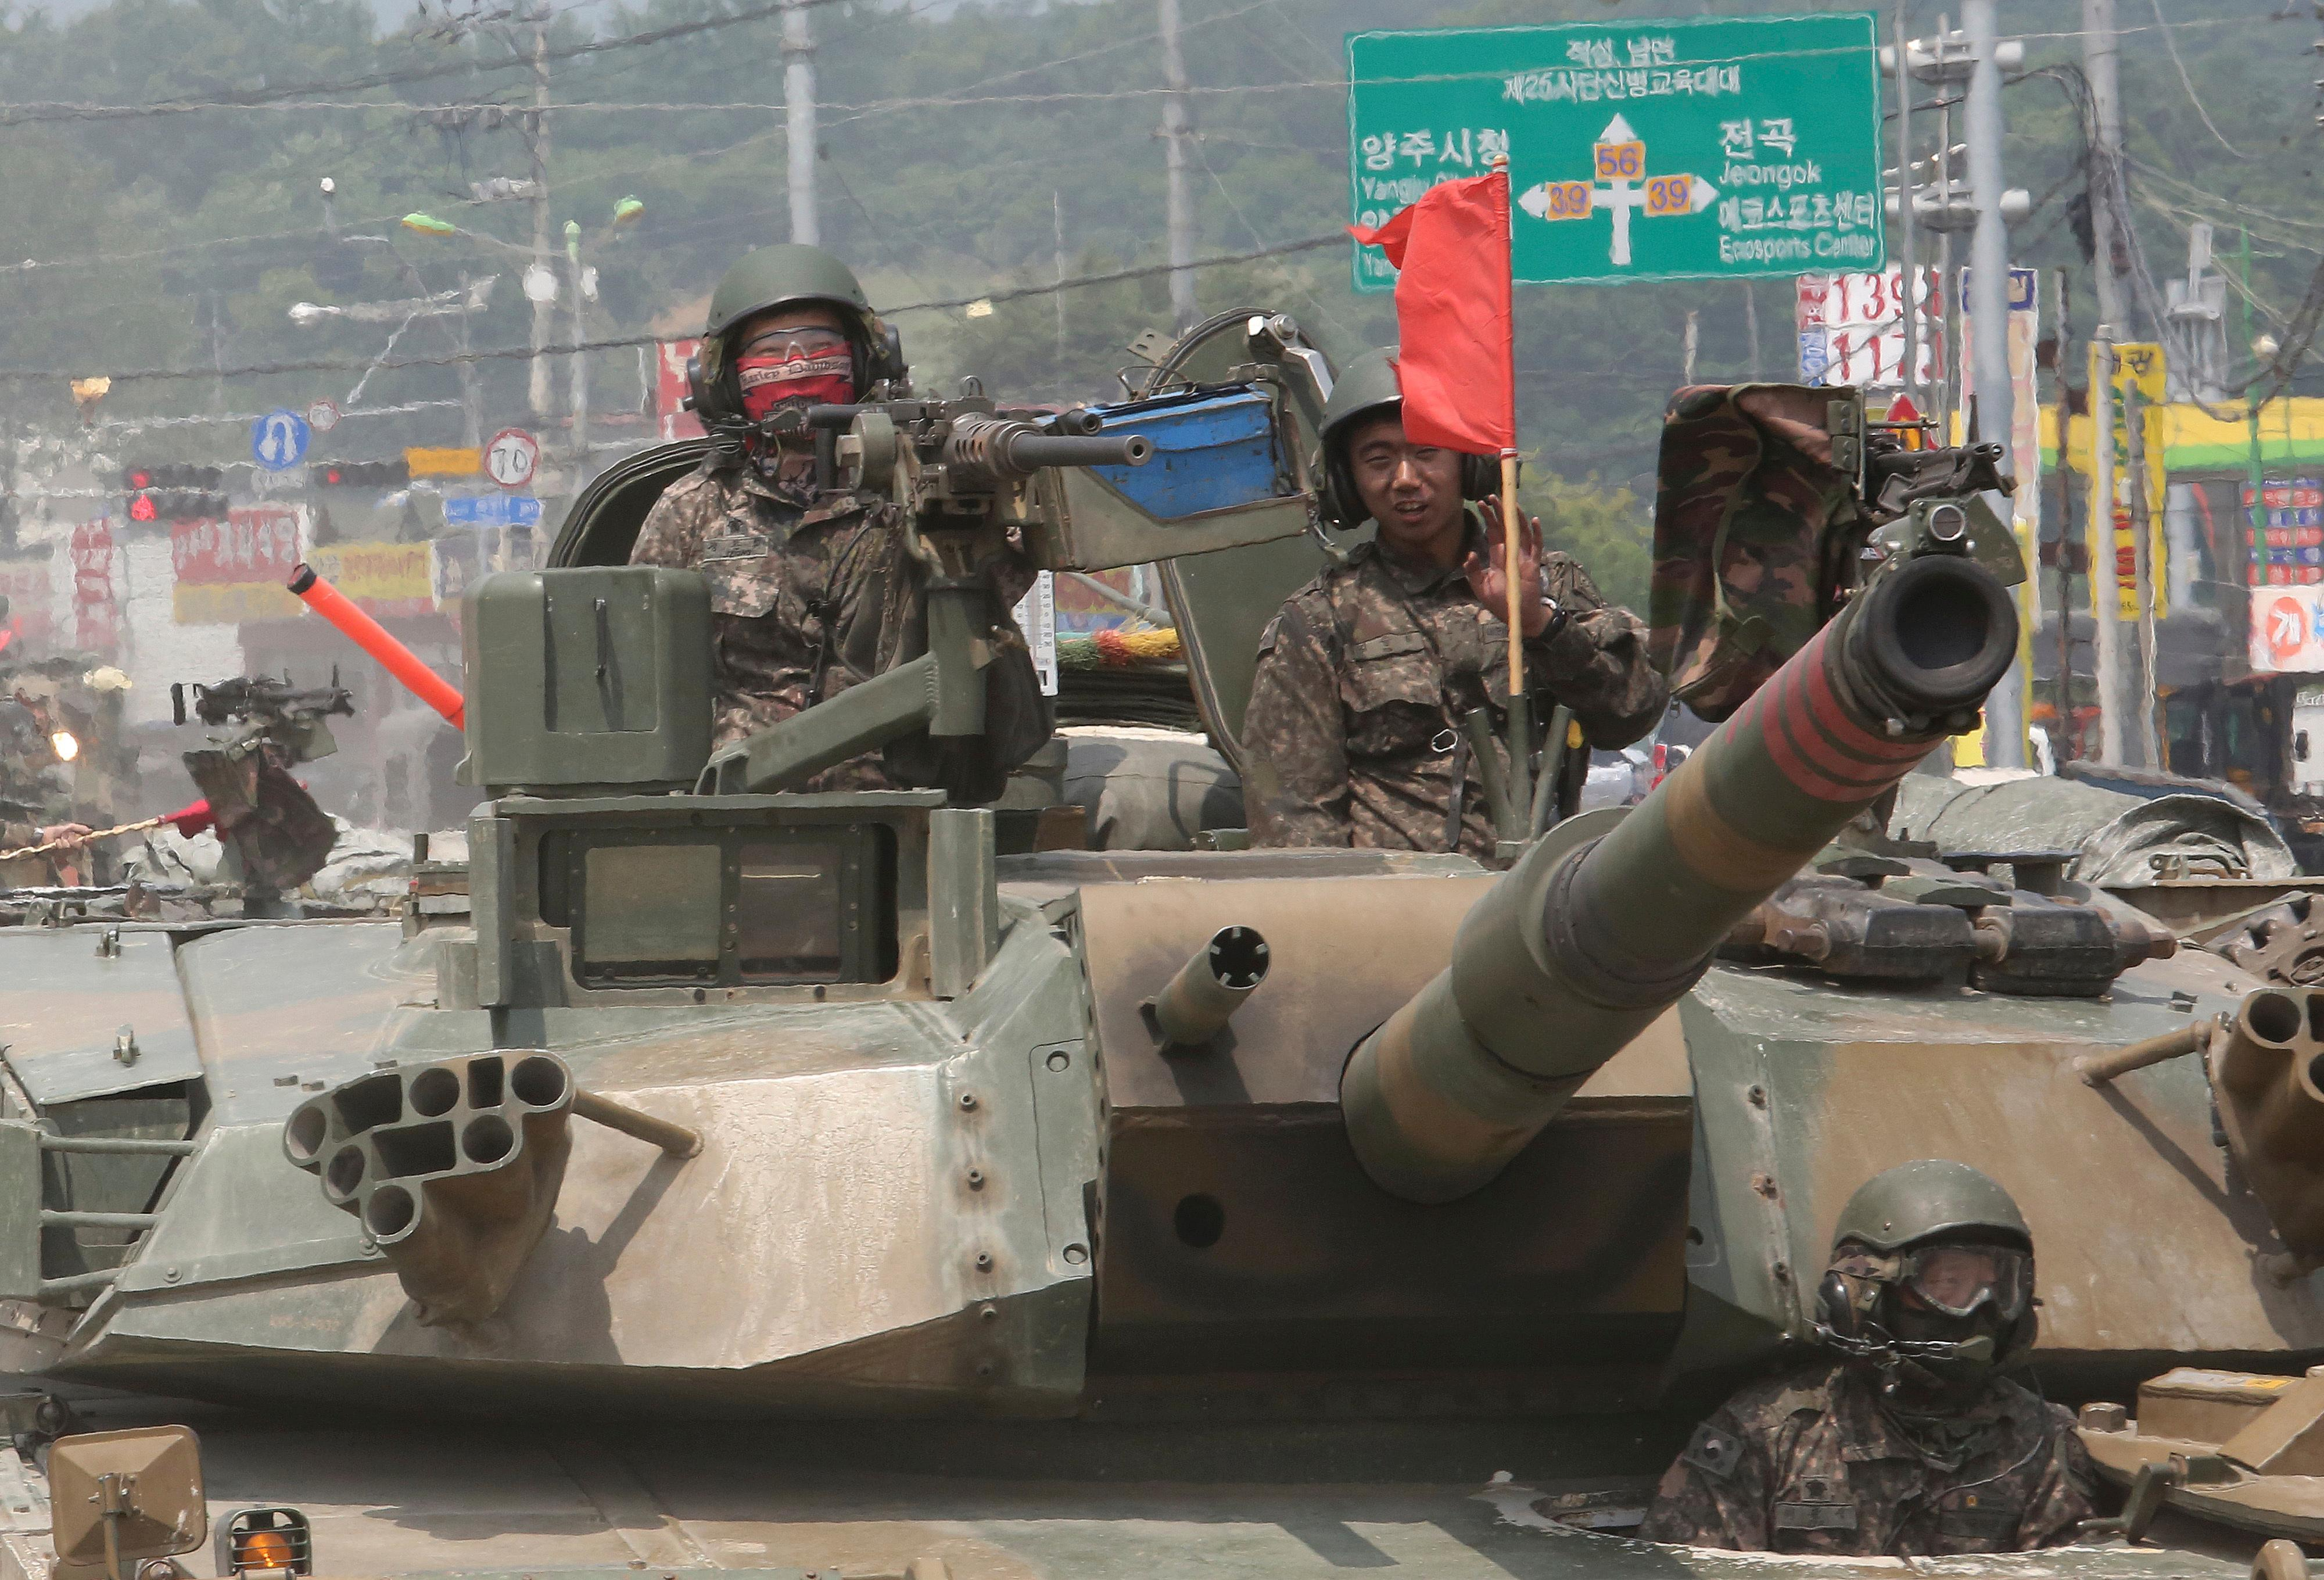 South Korean army soldiers ride a K-1 tank during the annual exercise in Paju, South Korea near the border with North Korea, Wednesday, July 5, 2017.  (AP Photo/Ahn Young-joon)